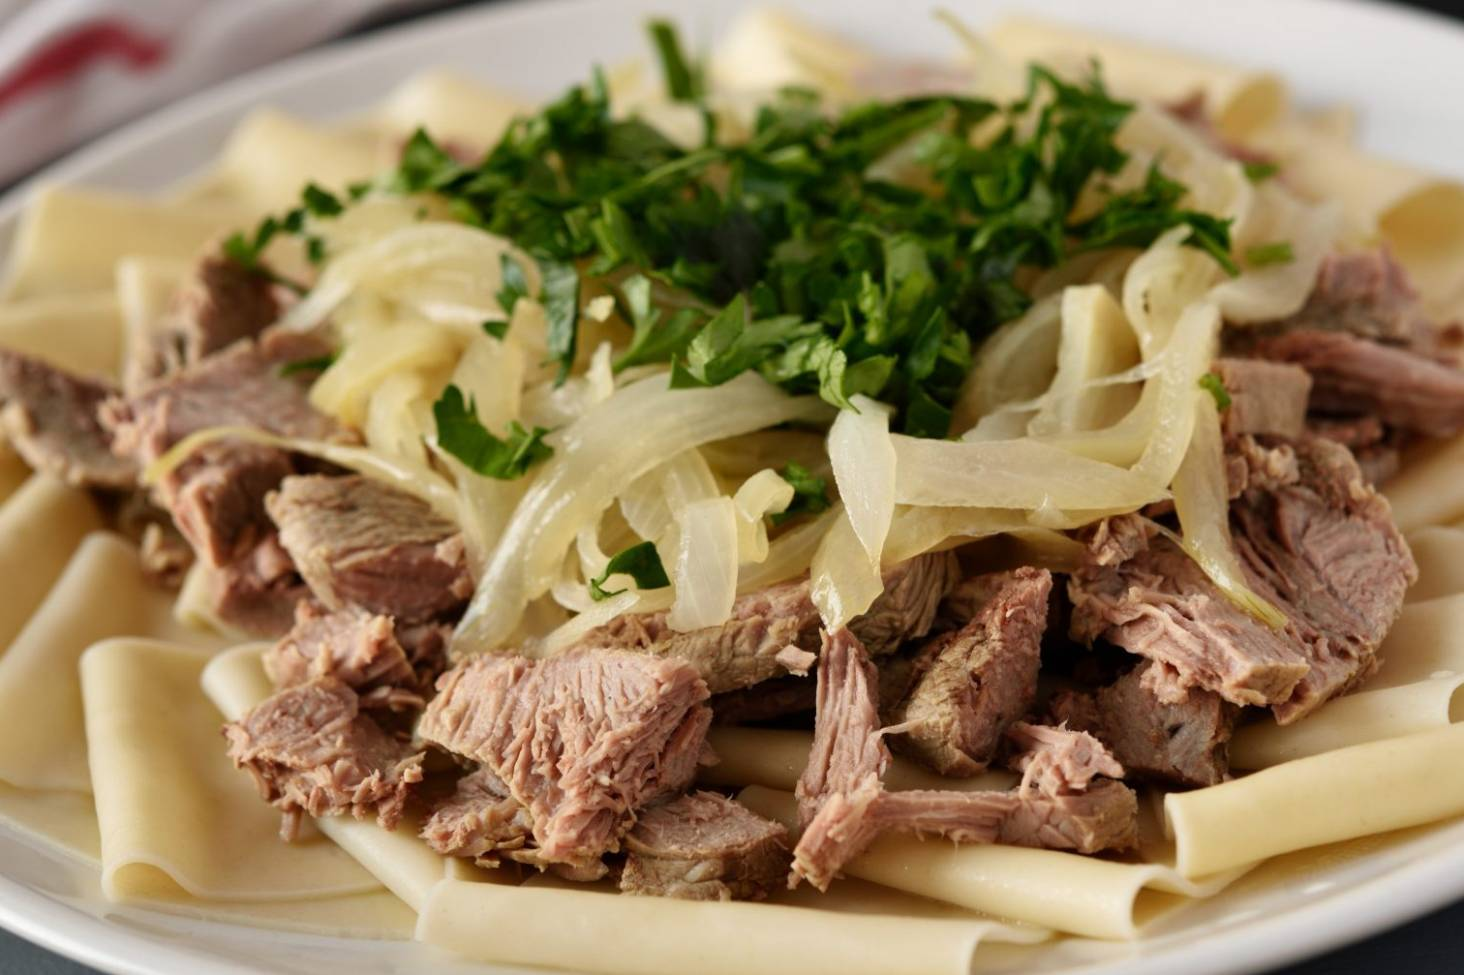 Kazakhstan food: Why you should never insult a country's